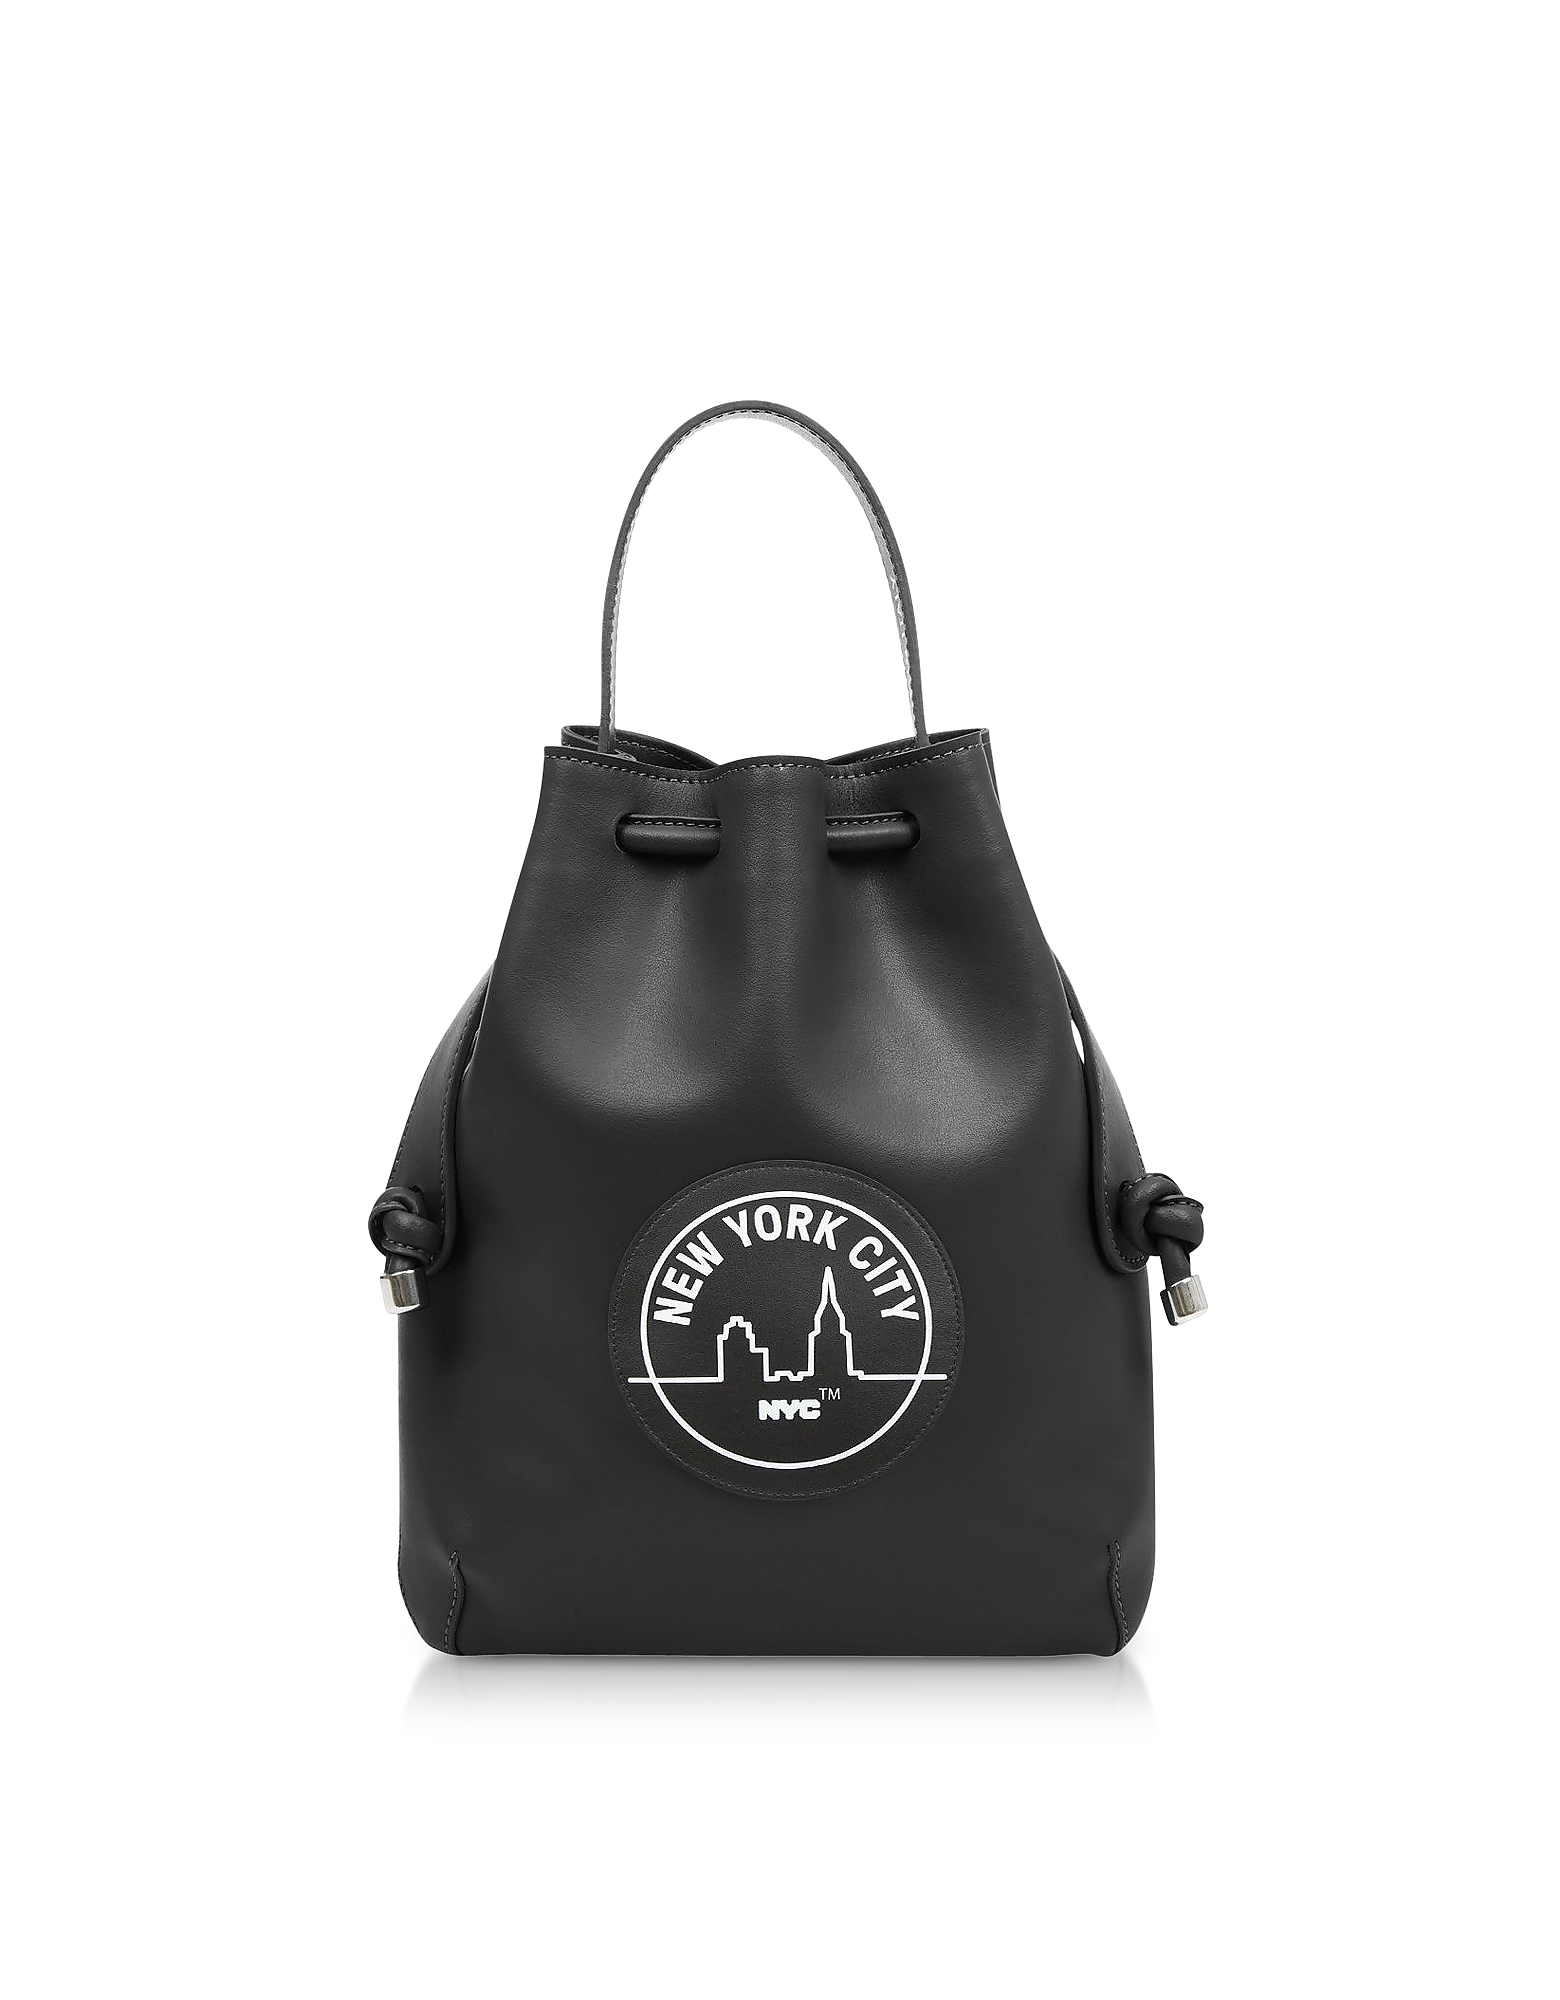 Meli Melo BLACK NYC BRIONY MINI BACKPACK